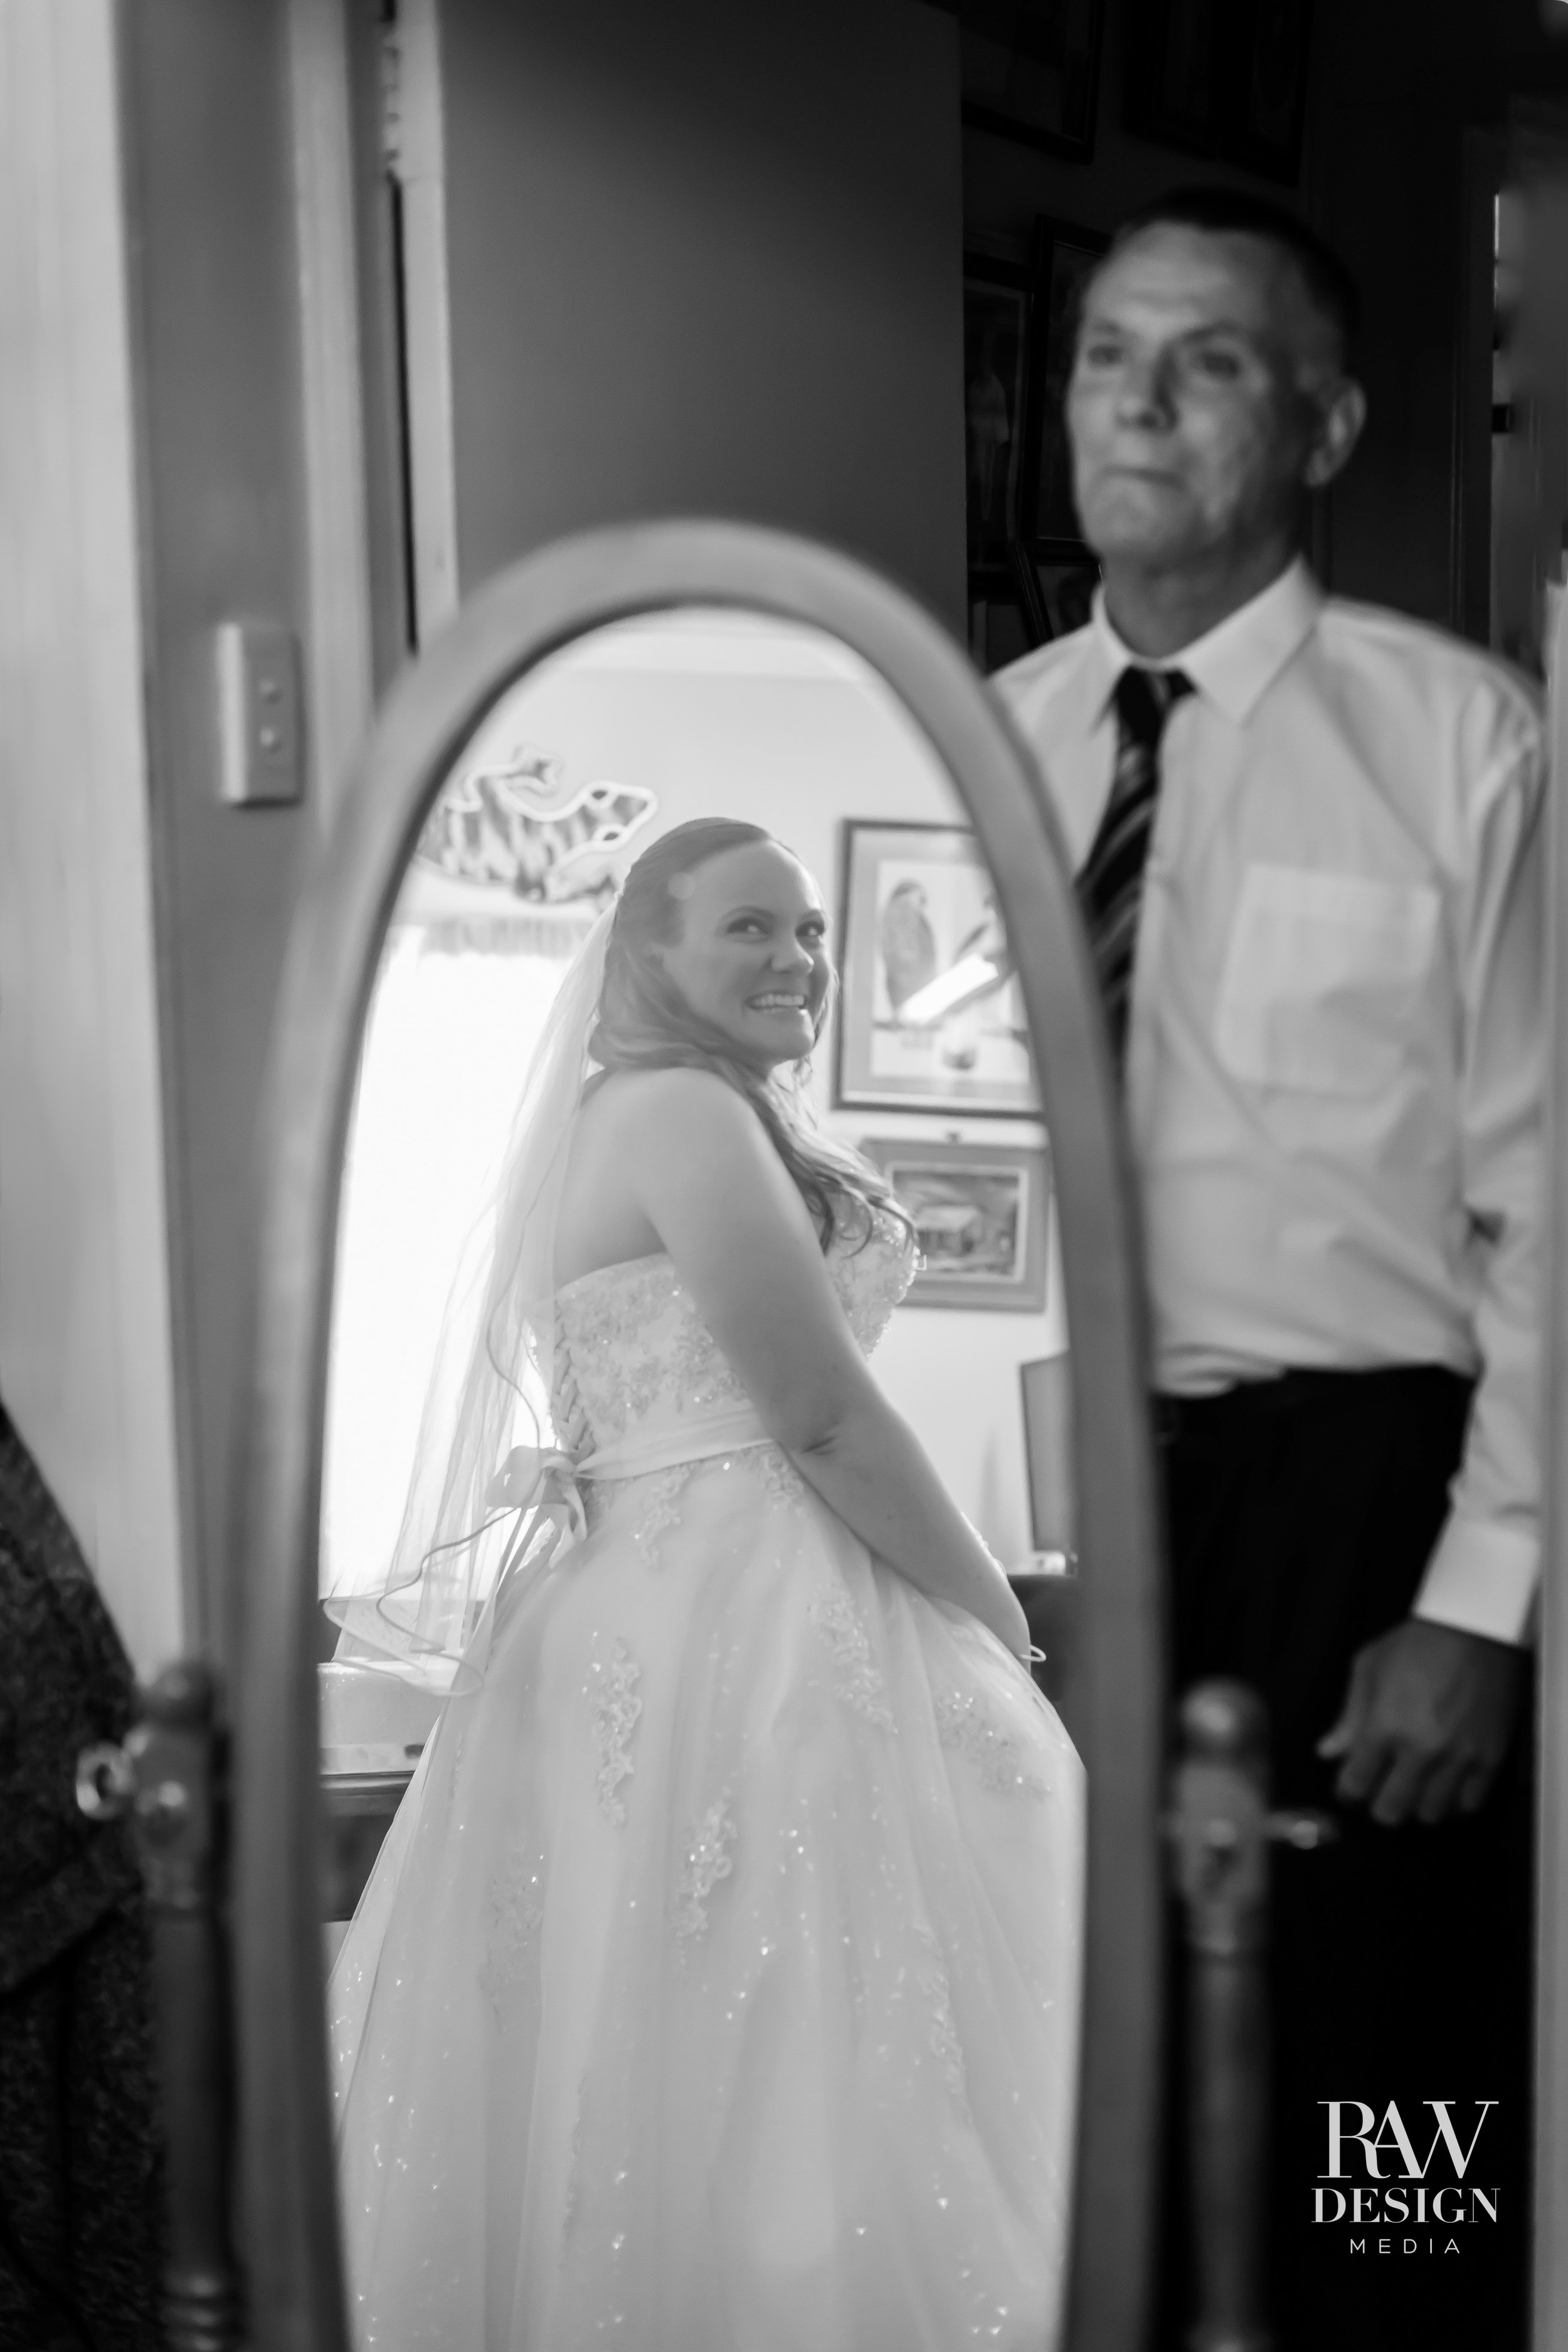 I love finding just the right moment to capture all of the overflowing emotions of a wedding day. This was just perfect. Katie turning around and noticing her dad standing back watching his beautiful daughter getting ready on her wedding day